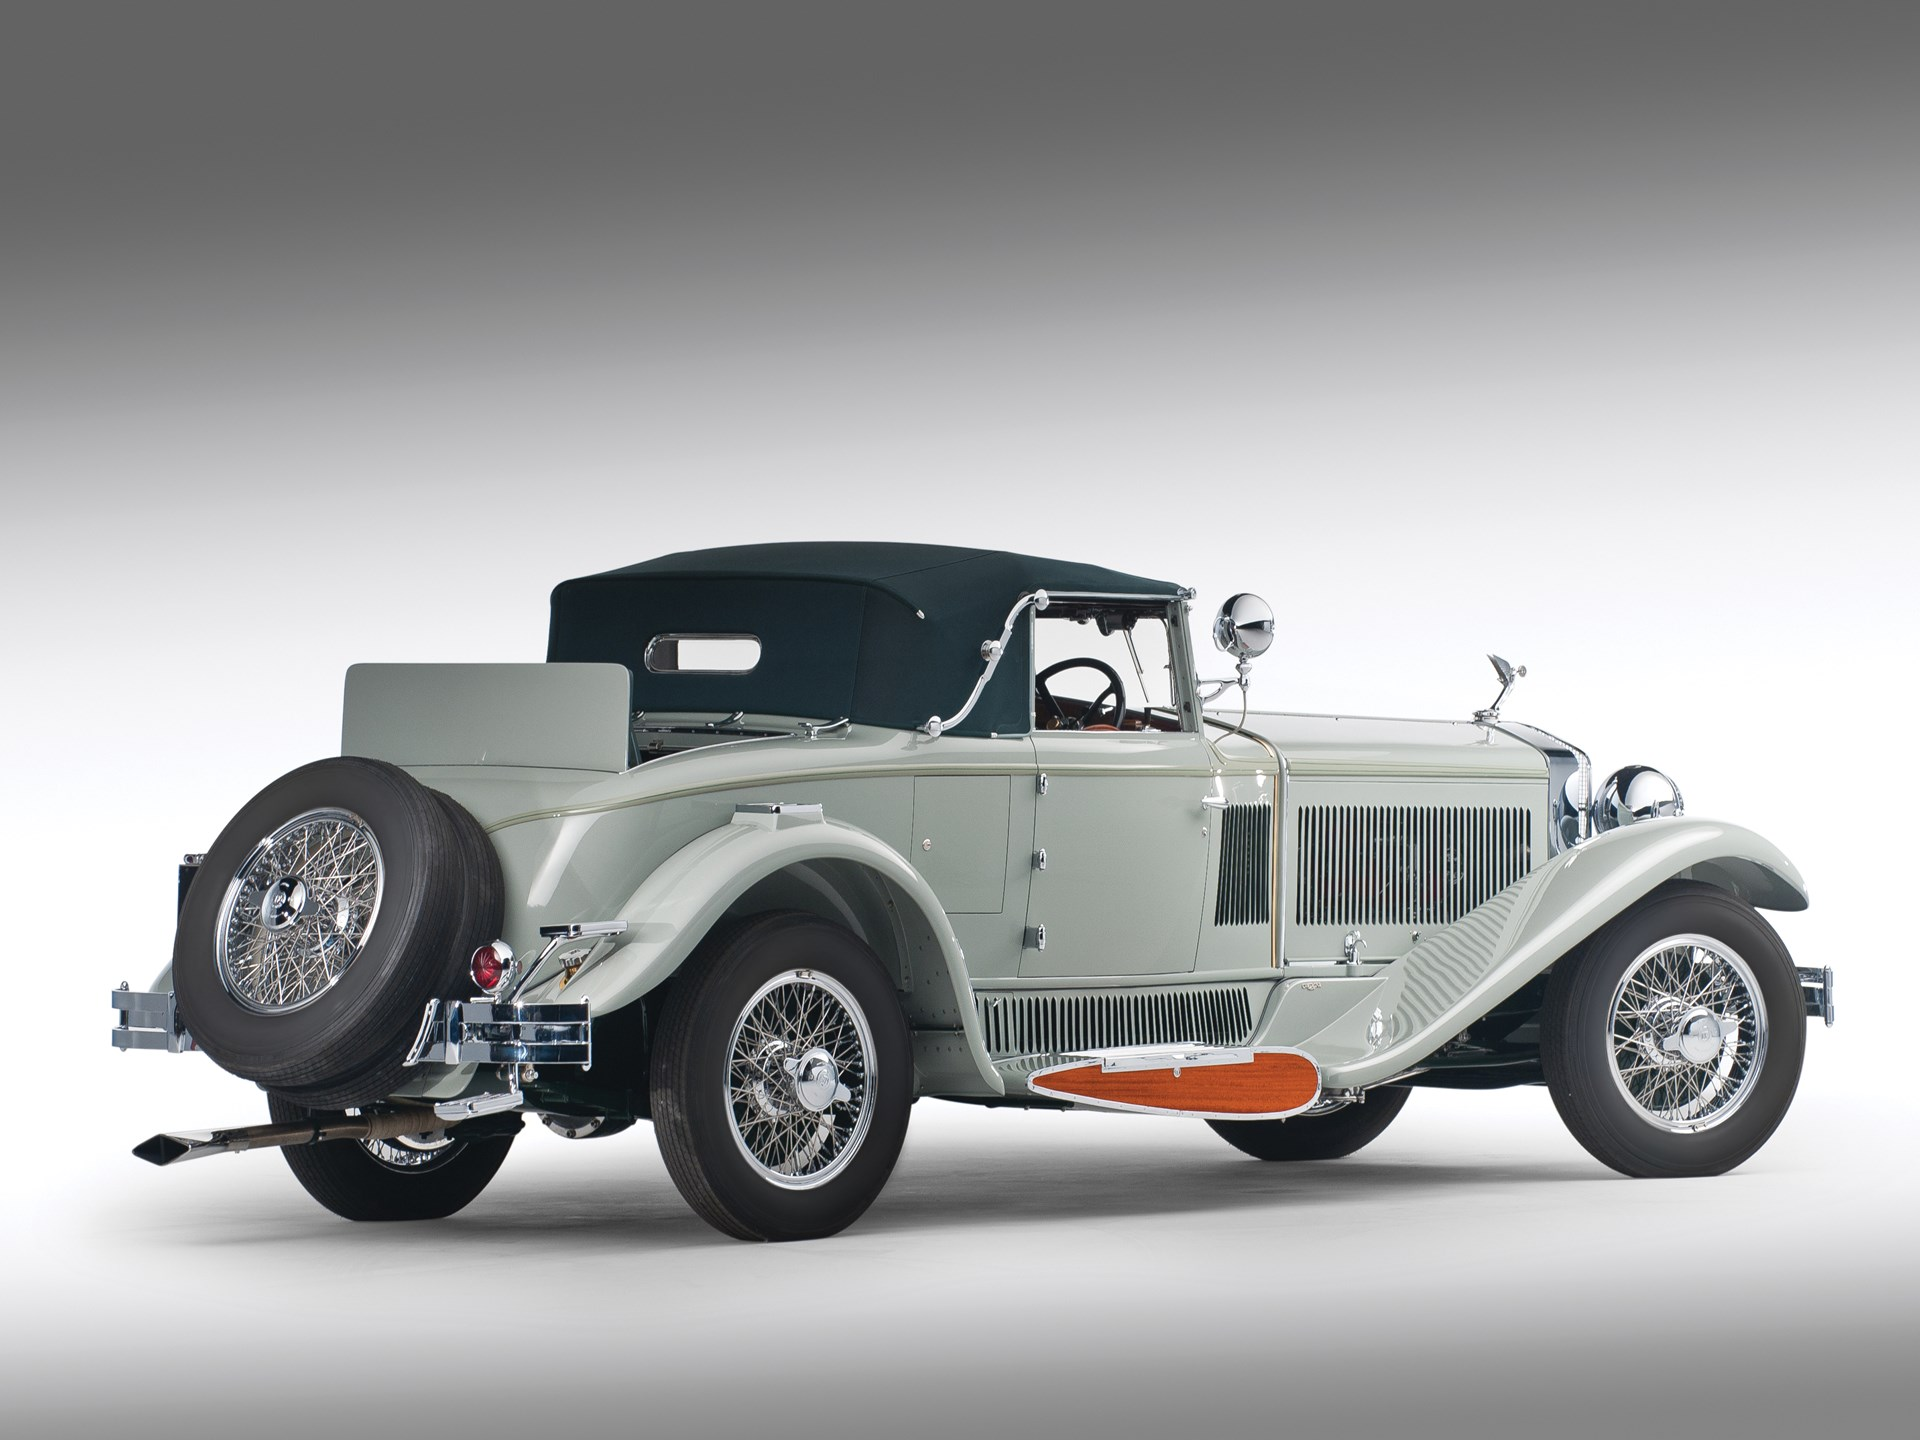 1930 Isotta Fraschini Tipo 8A S Boattail Cabriolet by Castagna